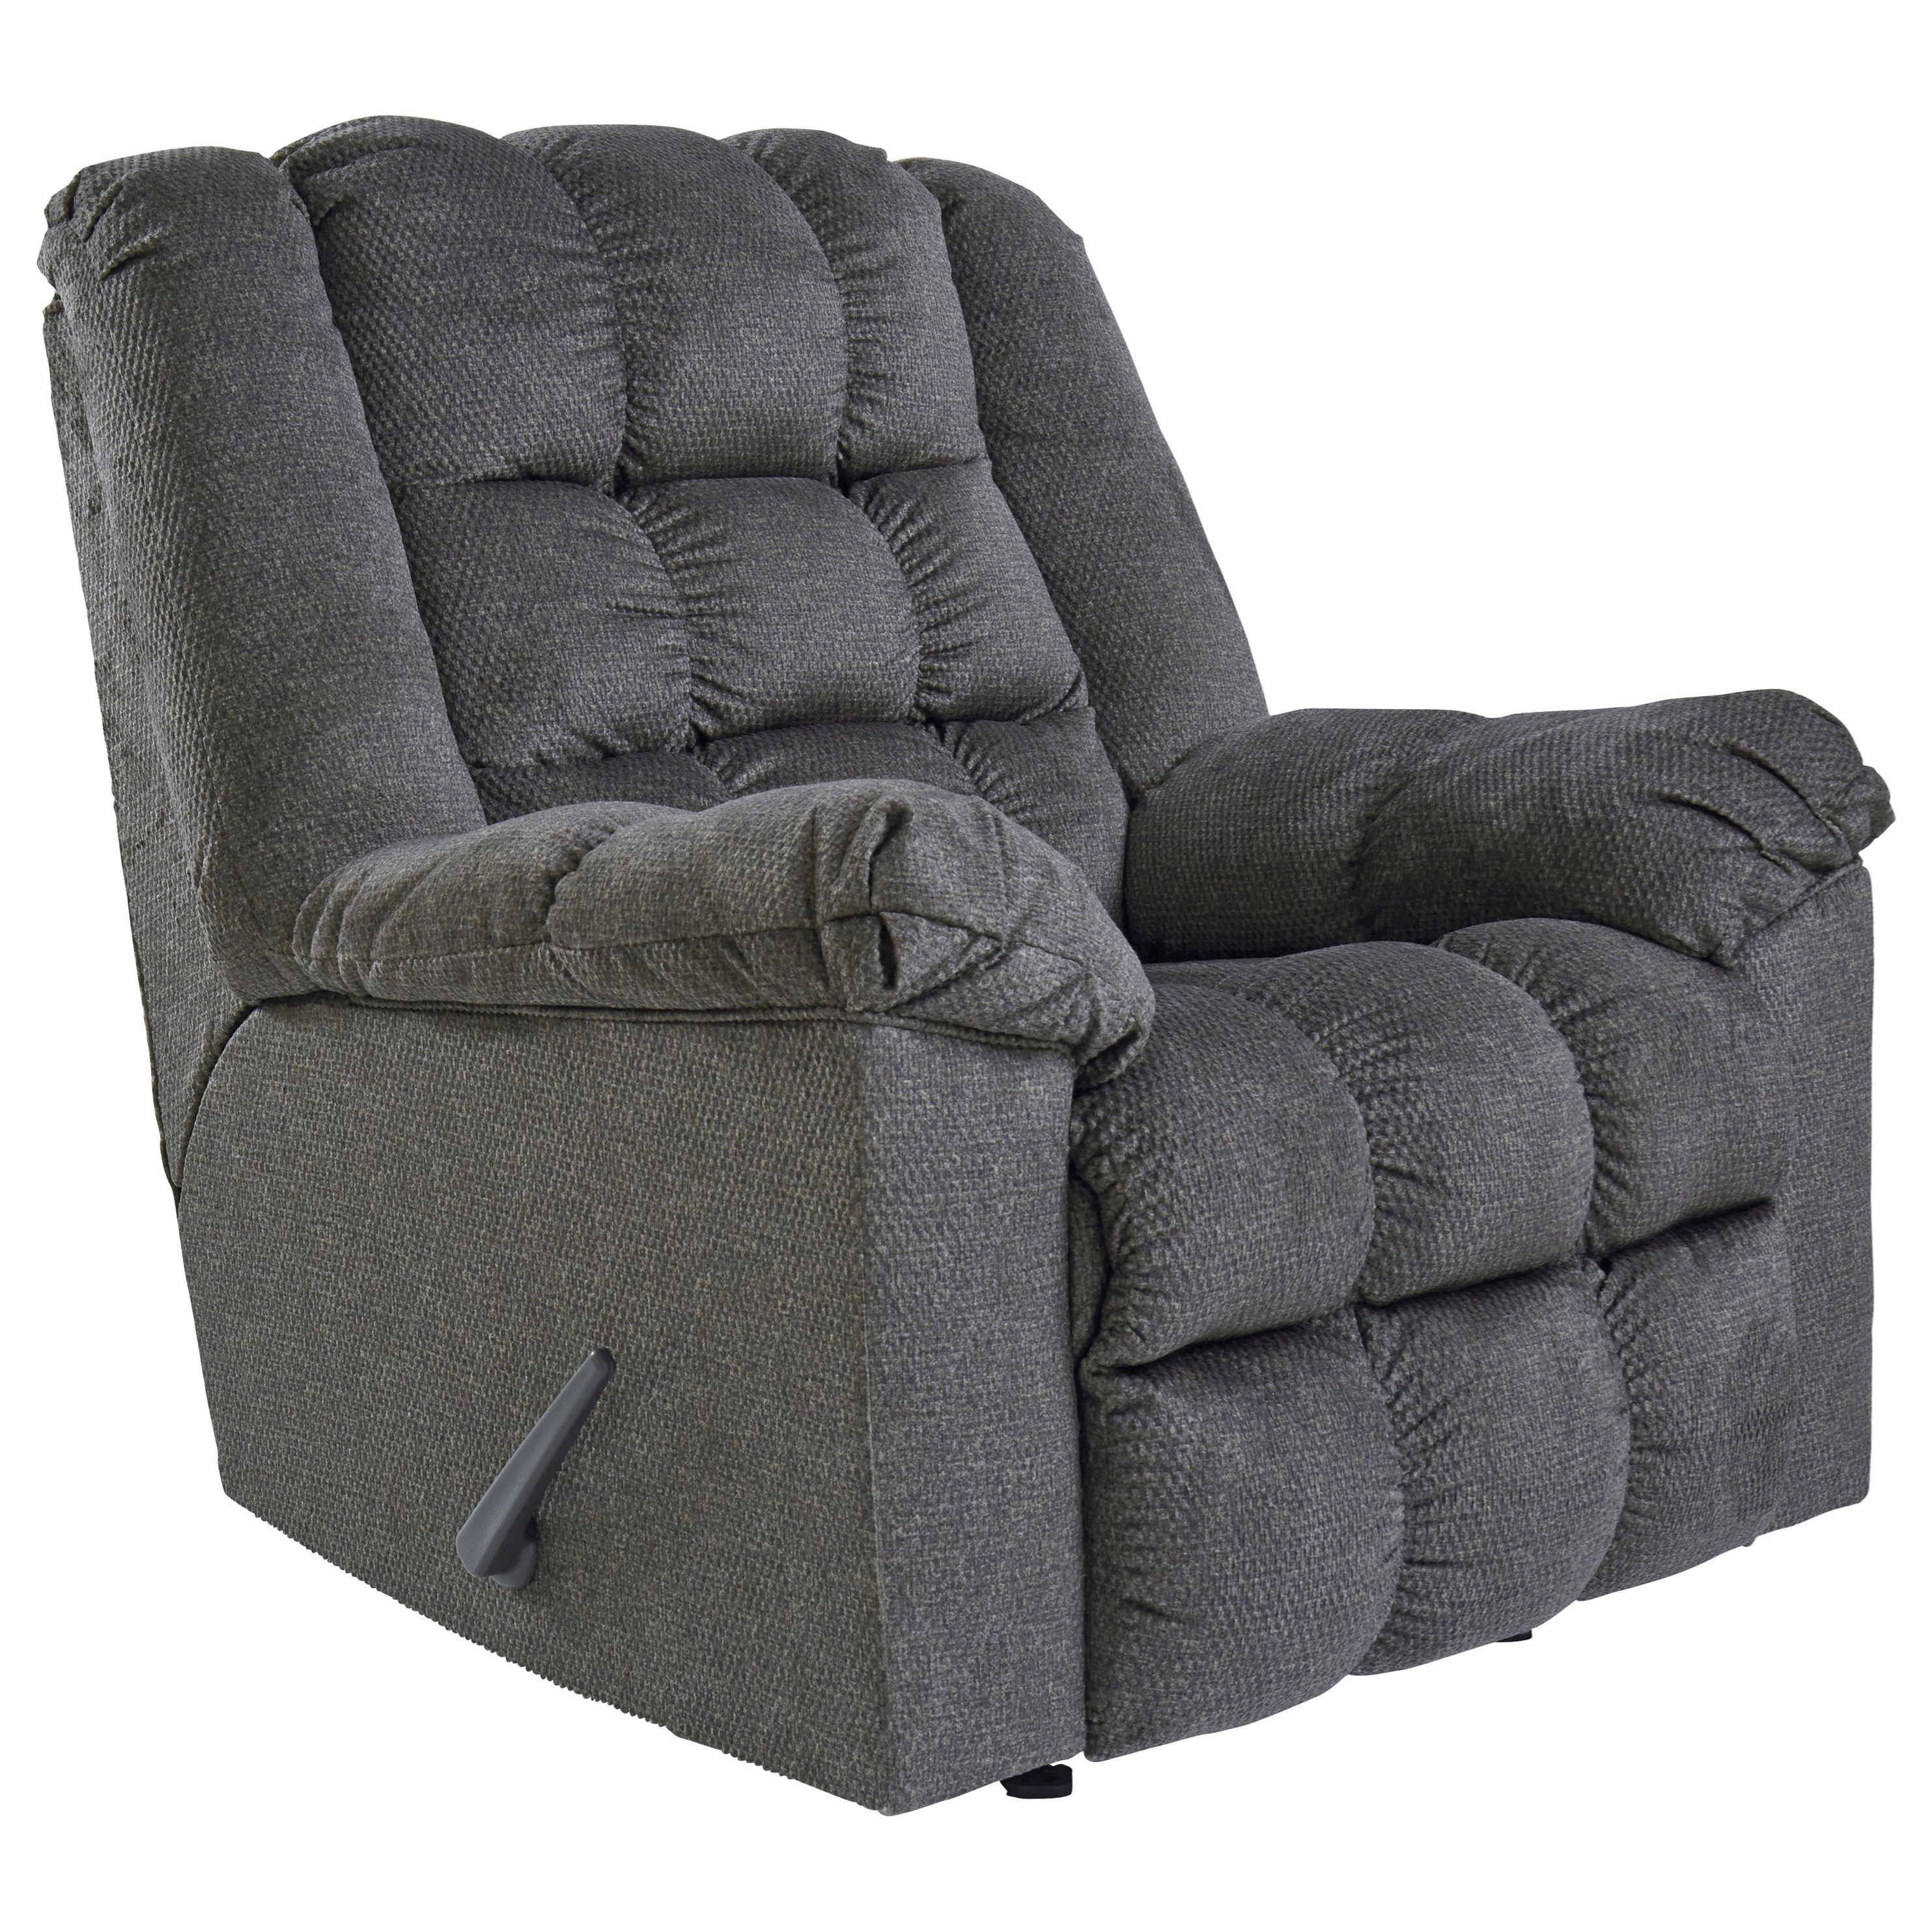 Drakestone Rocker Recliner by Signature Design by Ashley at Northeast Factory Direct